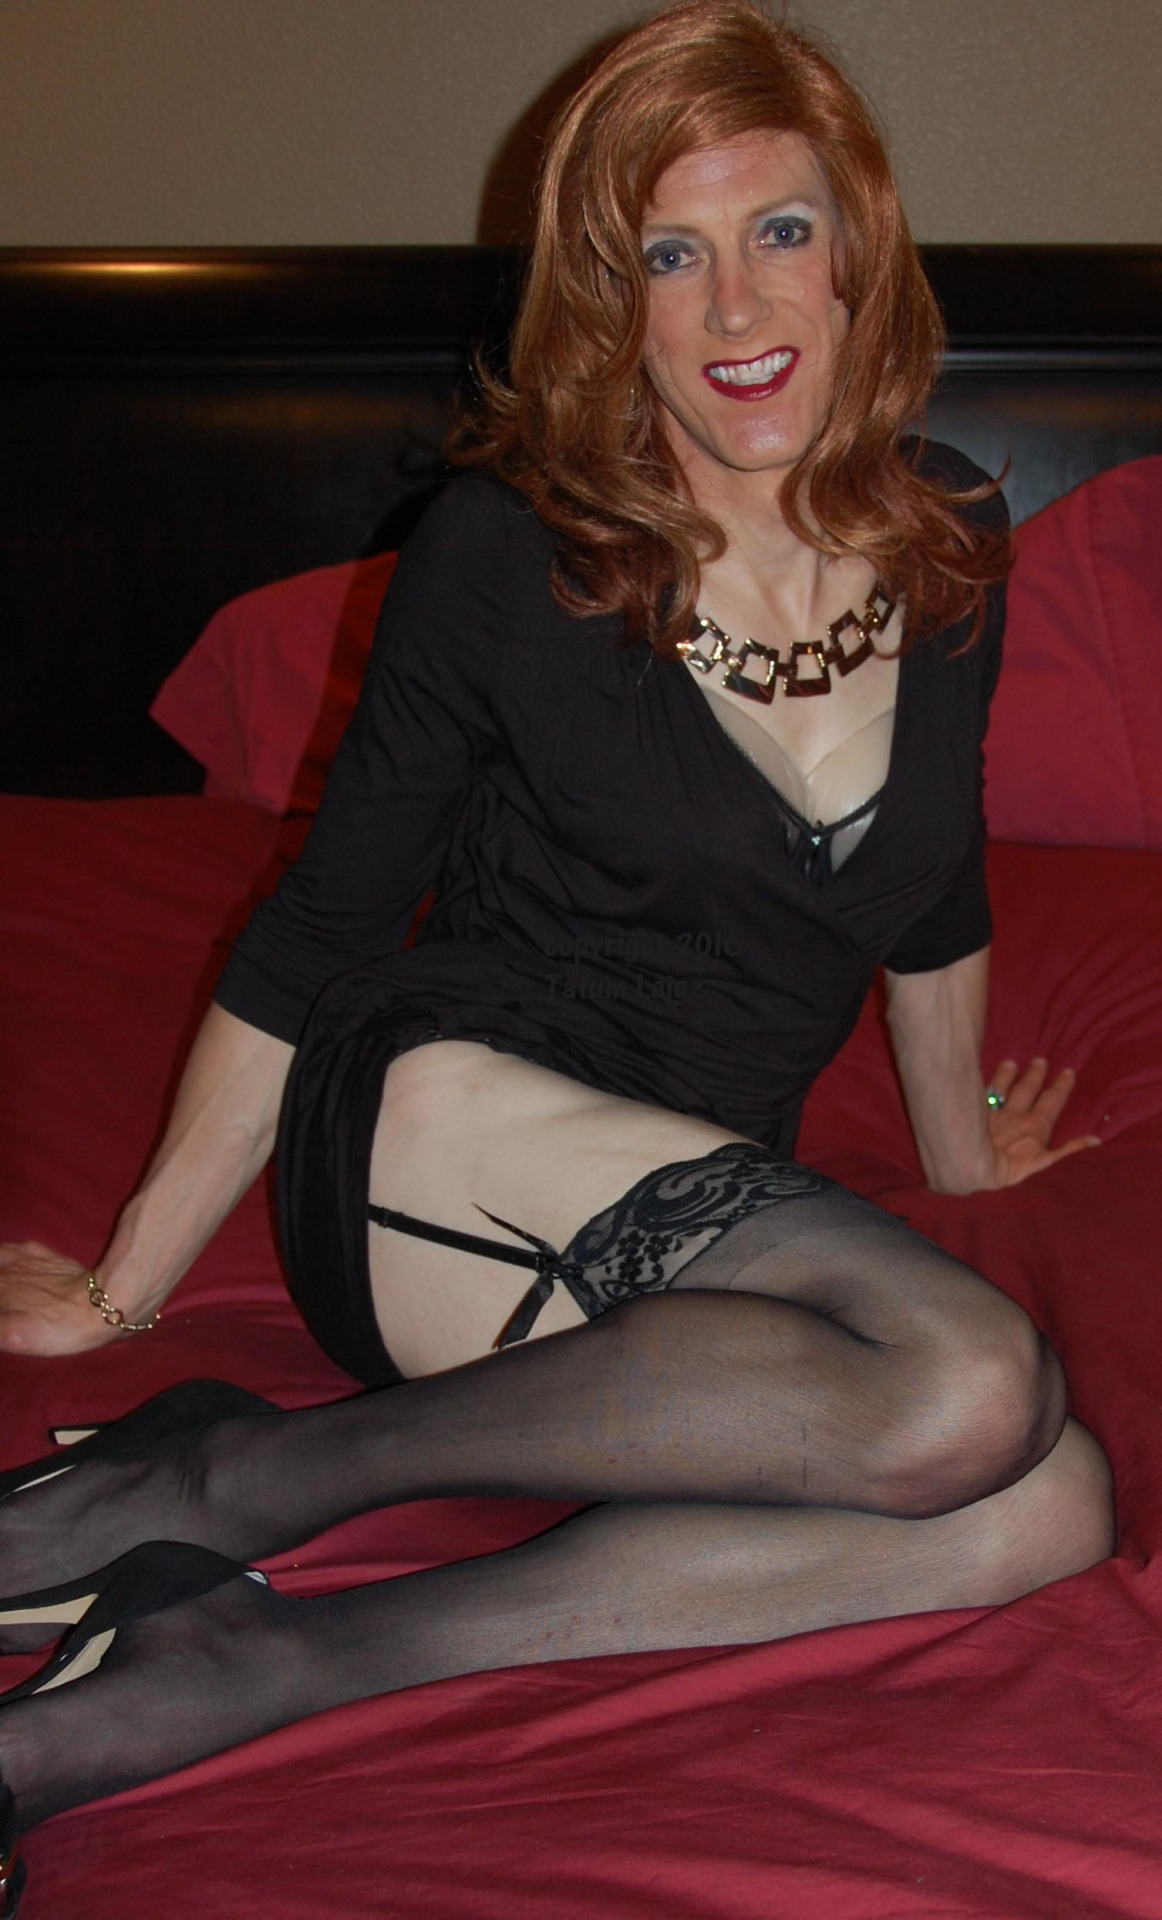 Wilfrid recommend best of trannies lingerie black in